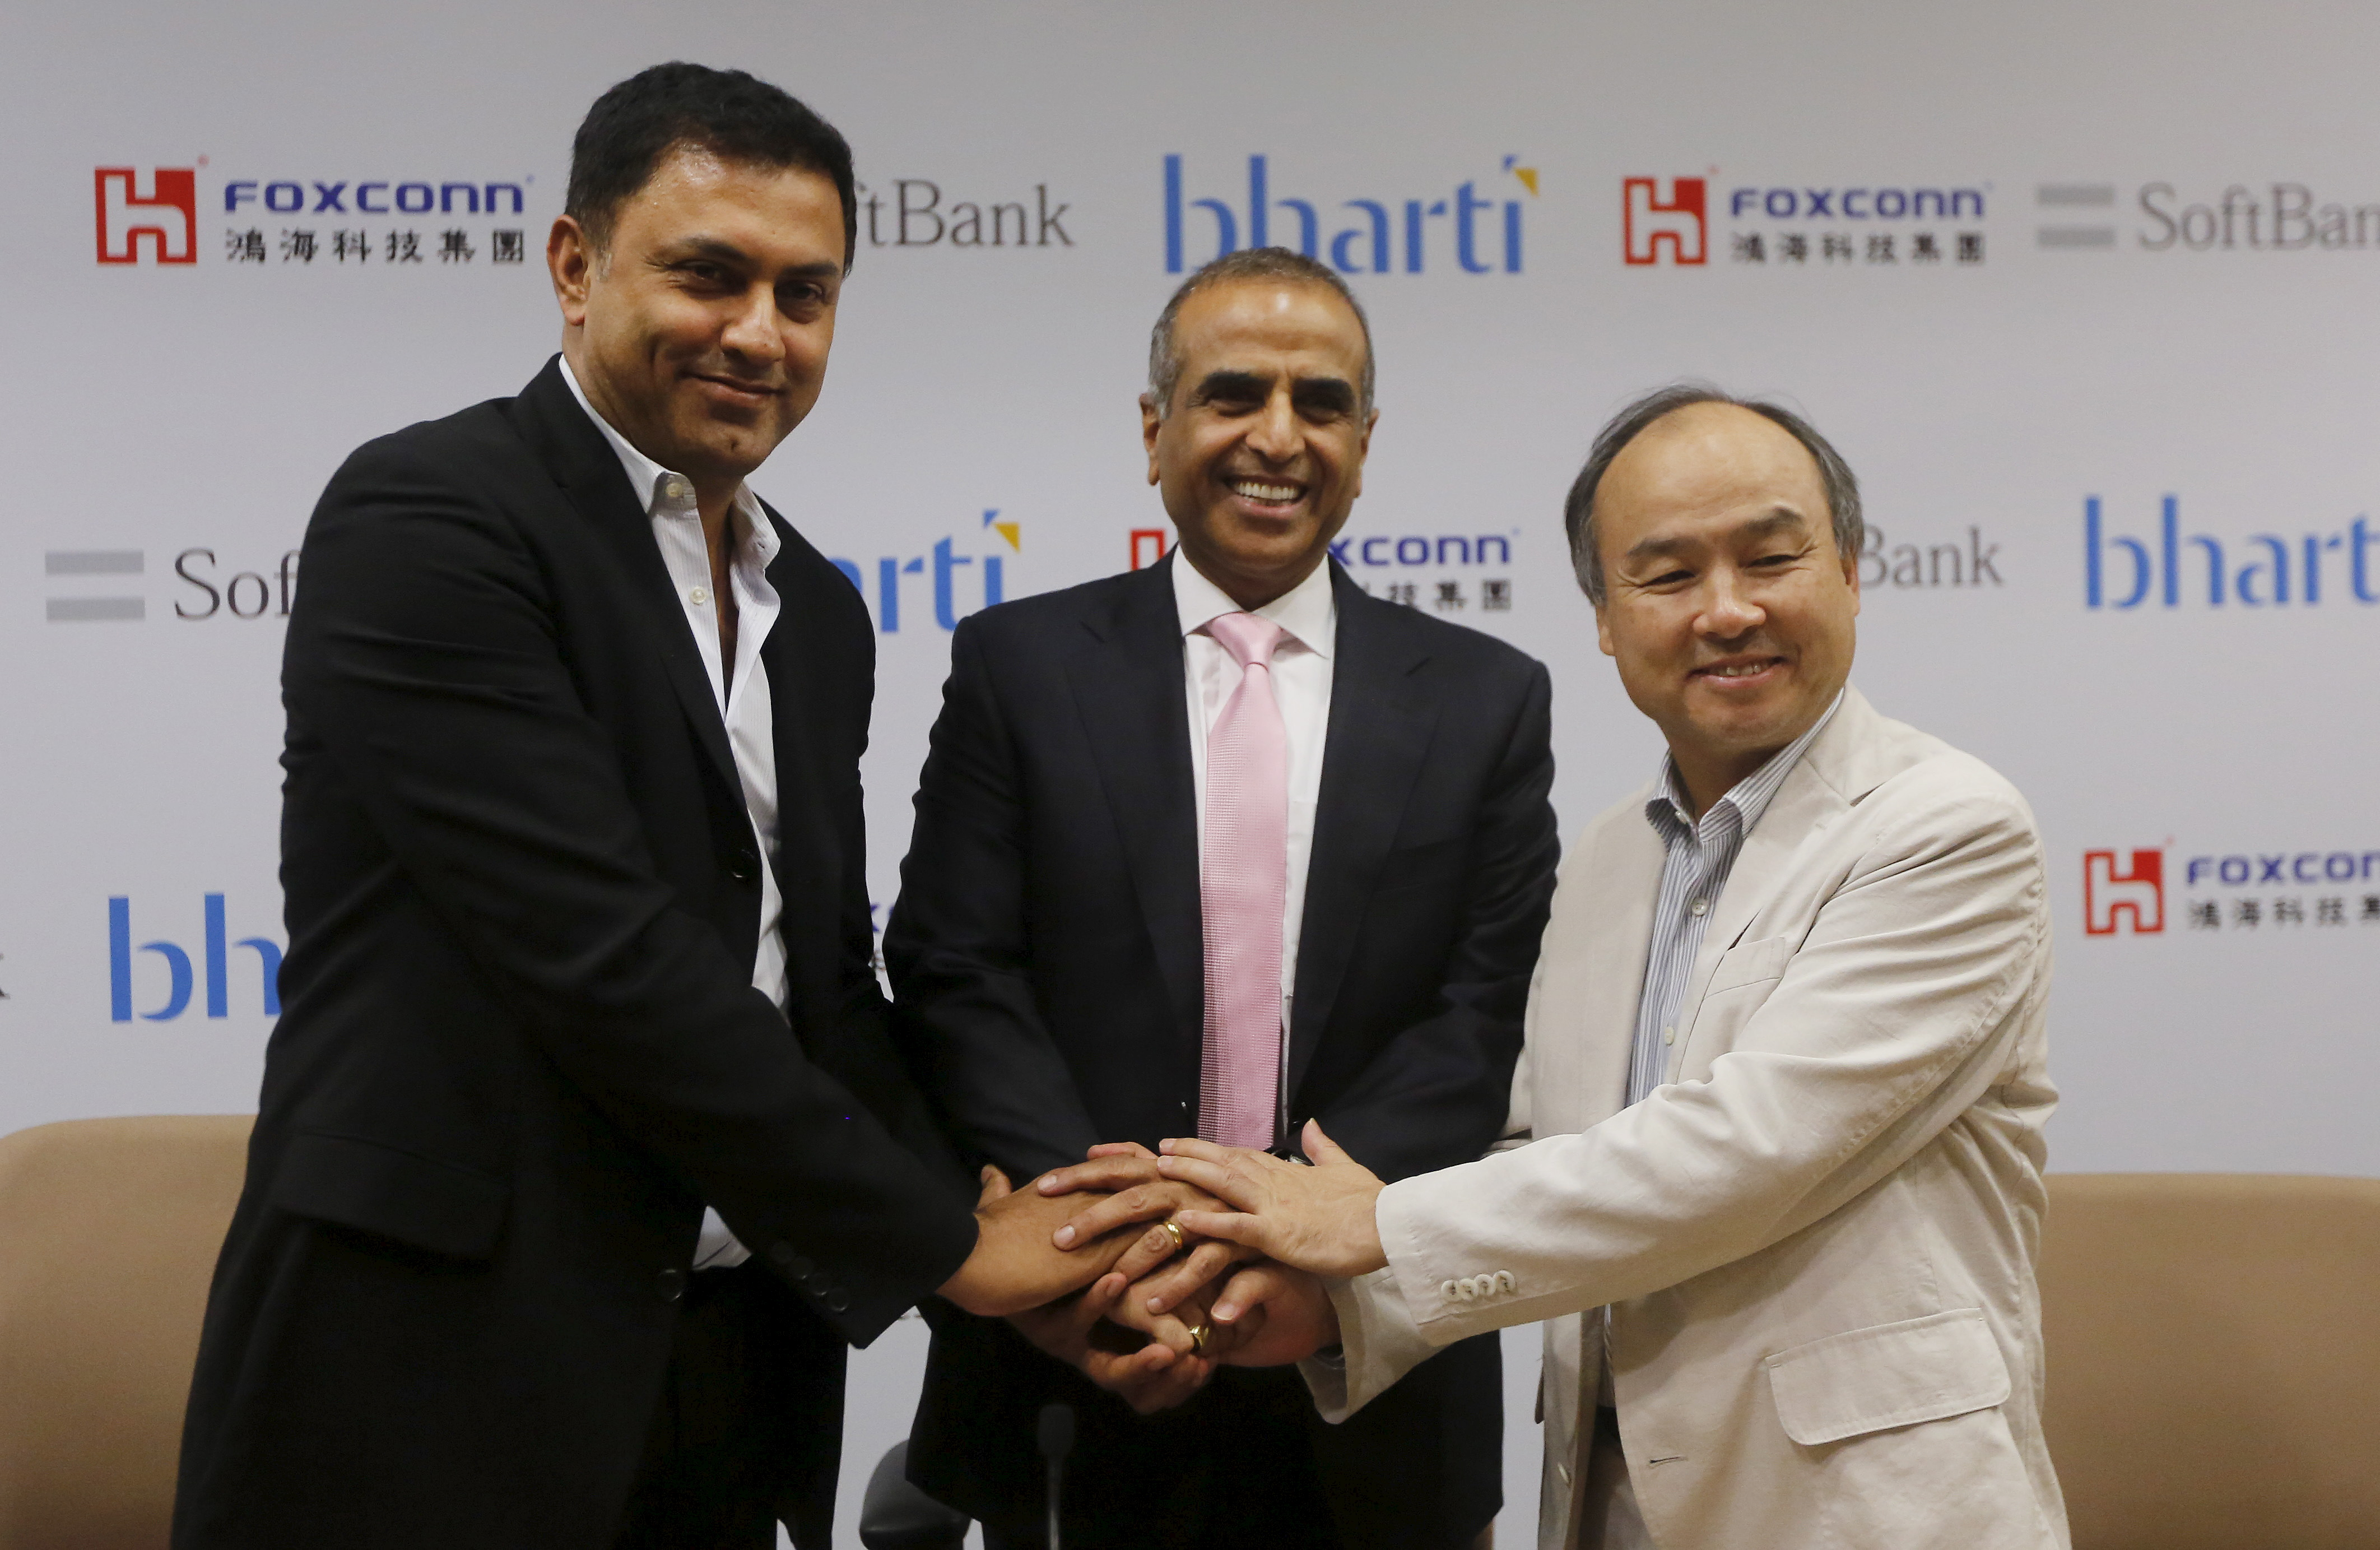 From right: Masayoshi Son, right, founder and CEO of SoftBank; Sunil Bharti Mittal, chairman of Bharti Enterprises; and Nikesh Arora, president of SoftBank, shake hands before the start of a news conference in New Delhi on June 22, 2015